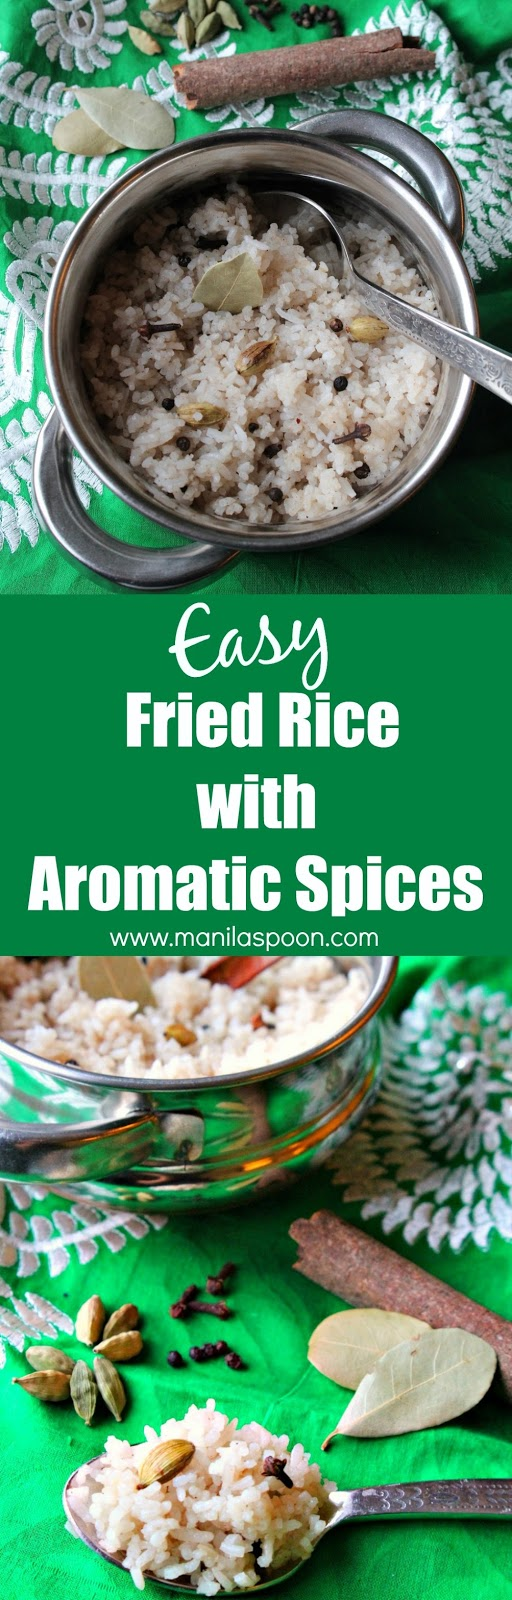 Tasty and mildly spiced this fried rice is the perfect side dish for your favorite Asian food especially curries and stews. Great way to use left-over rice, too and it's gluten-free! | manilaspoon.com